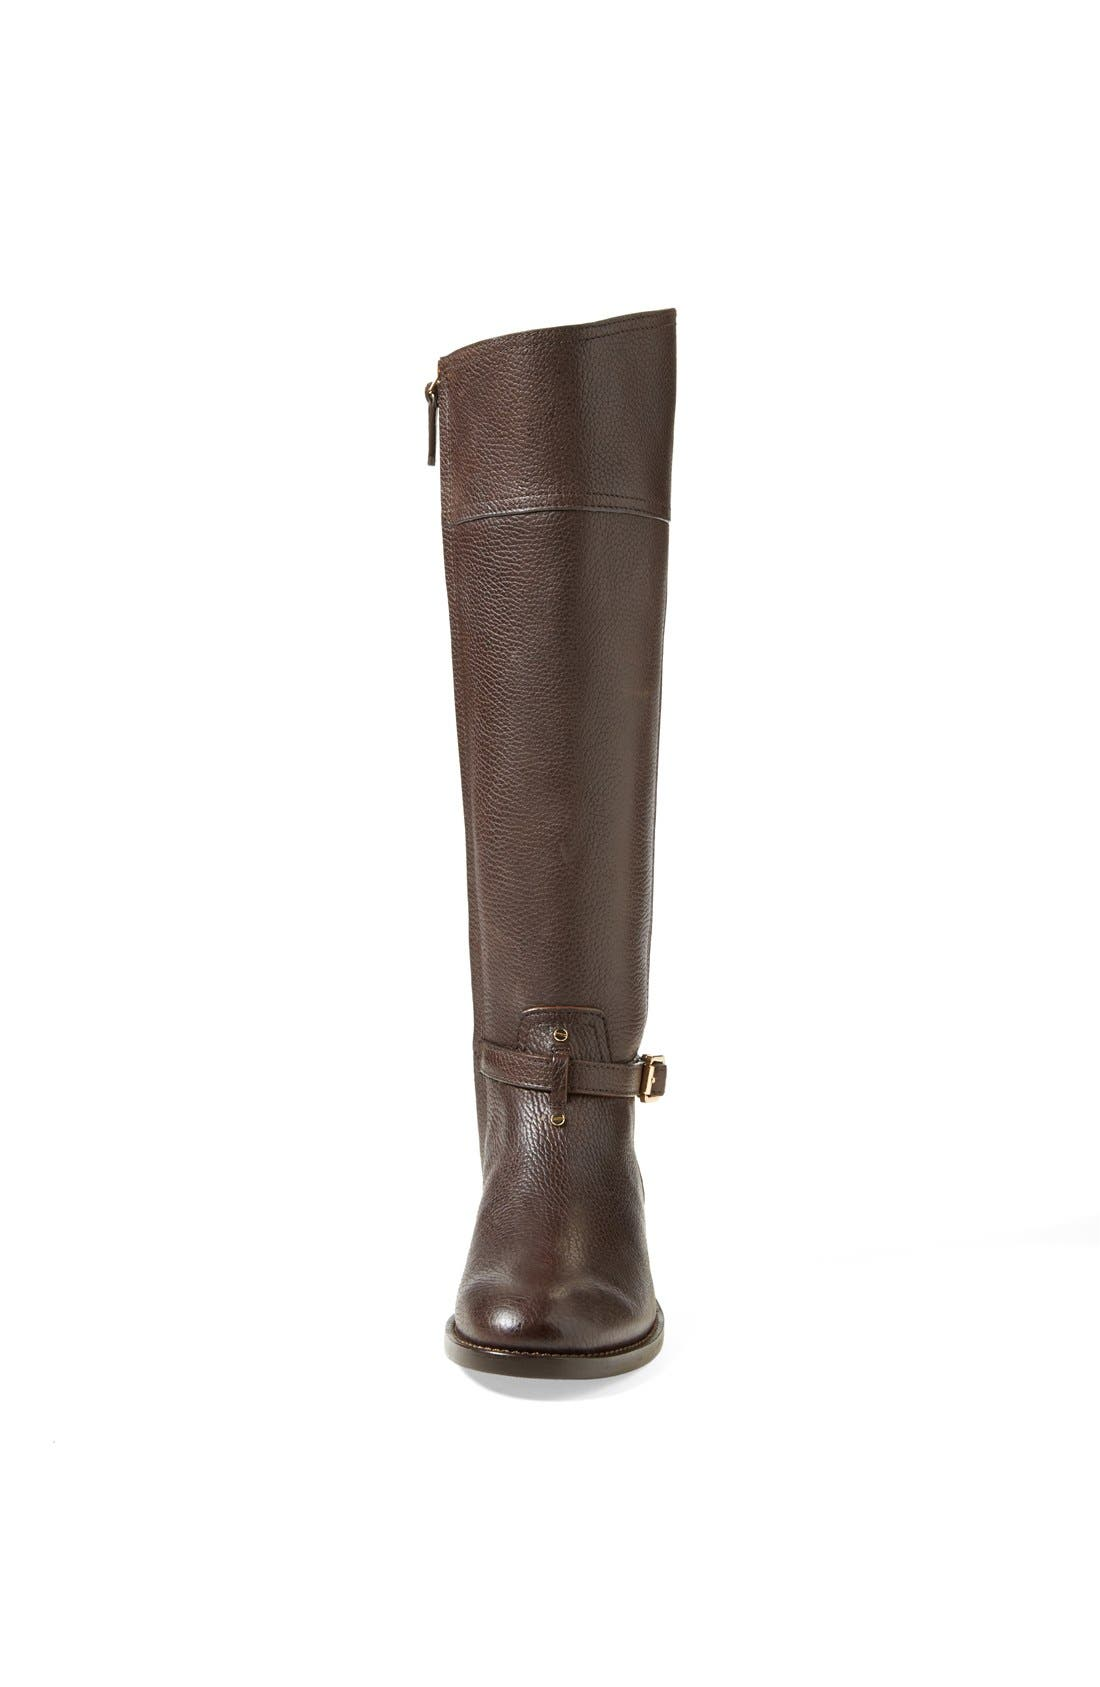 Alternate Image 3  - Tory Burch 'Marlene' Leather Riding Boot